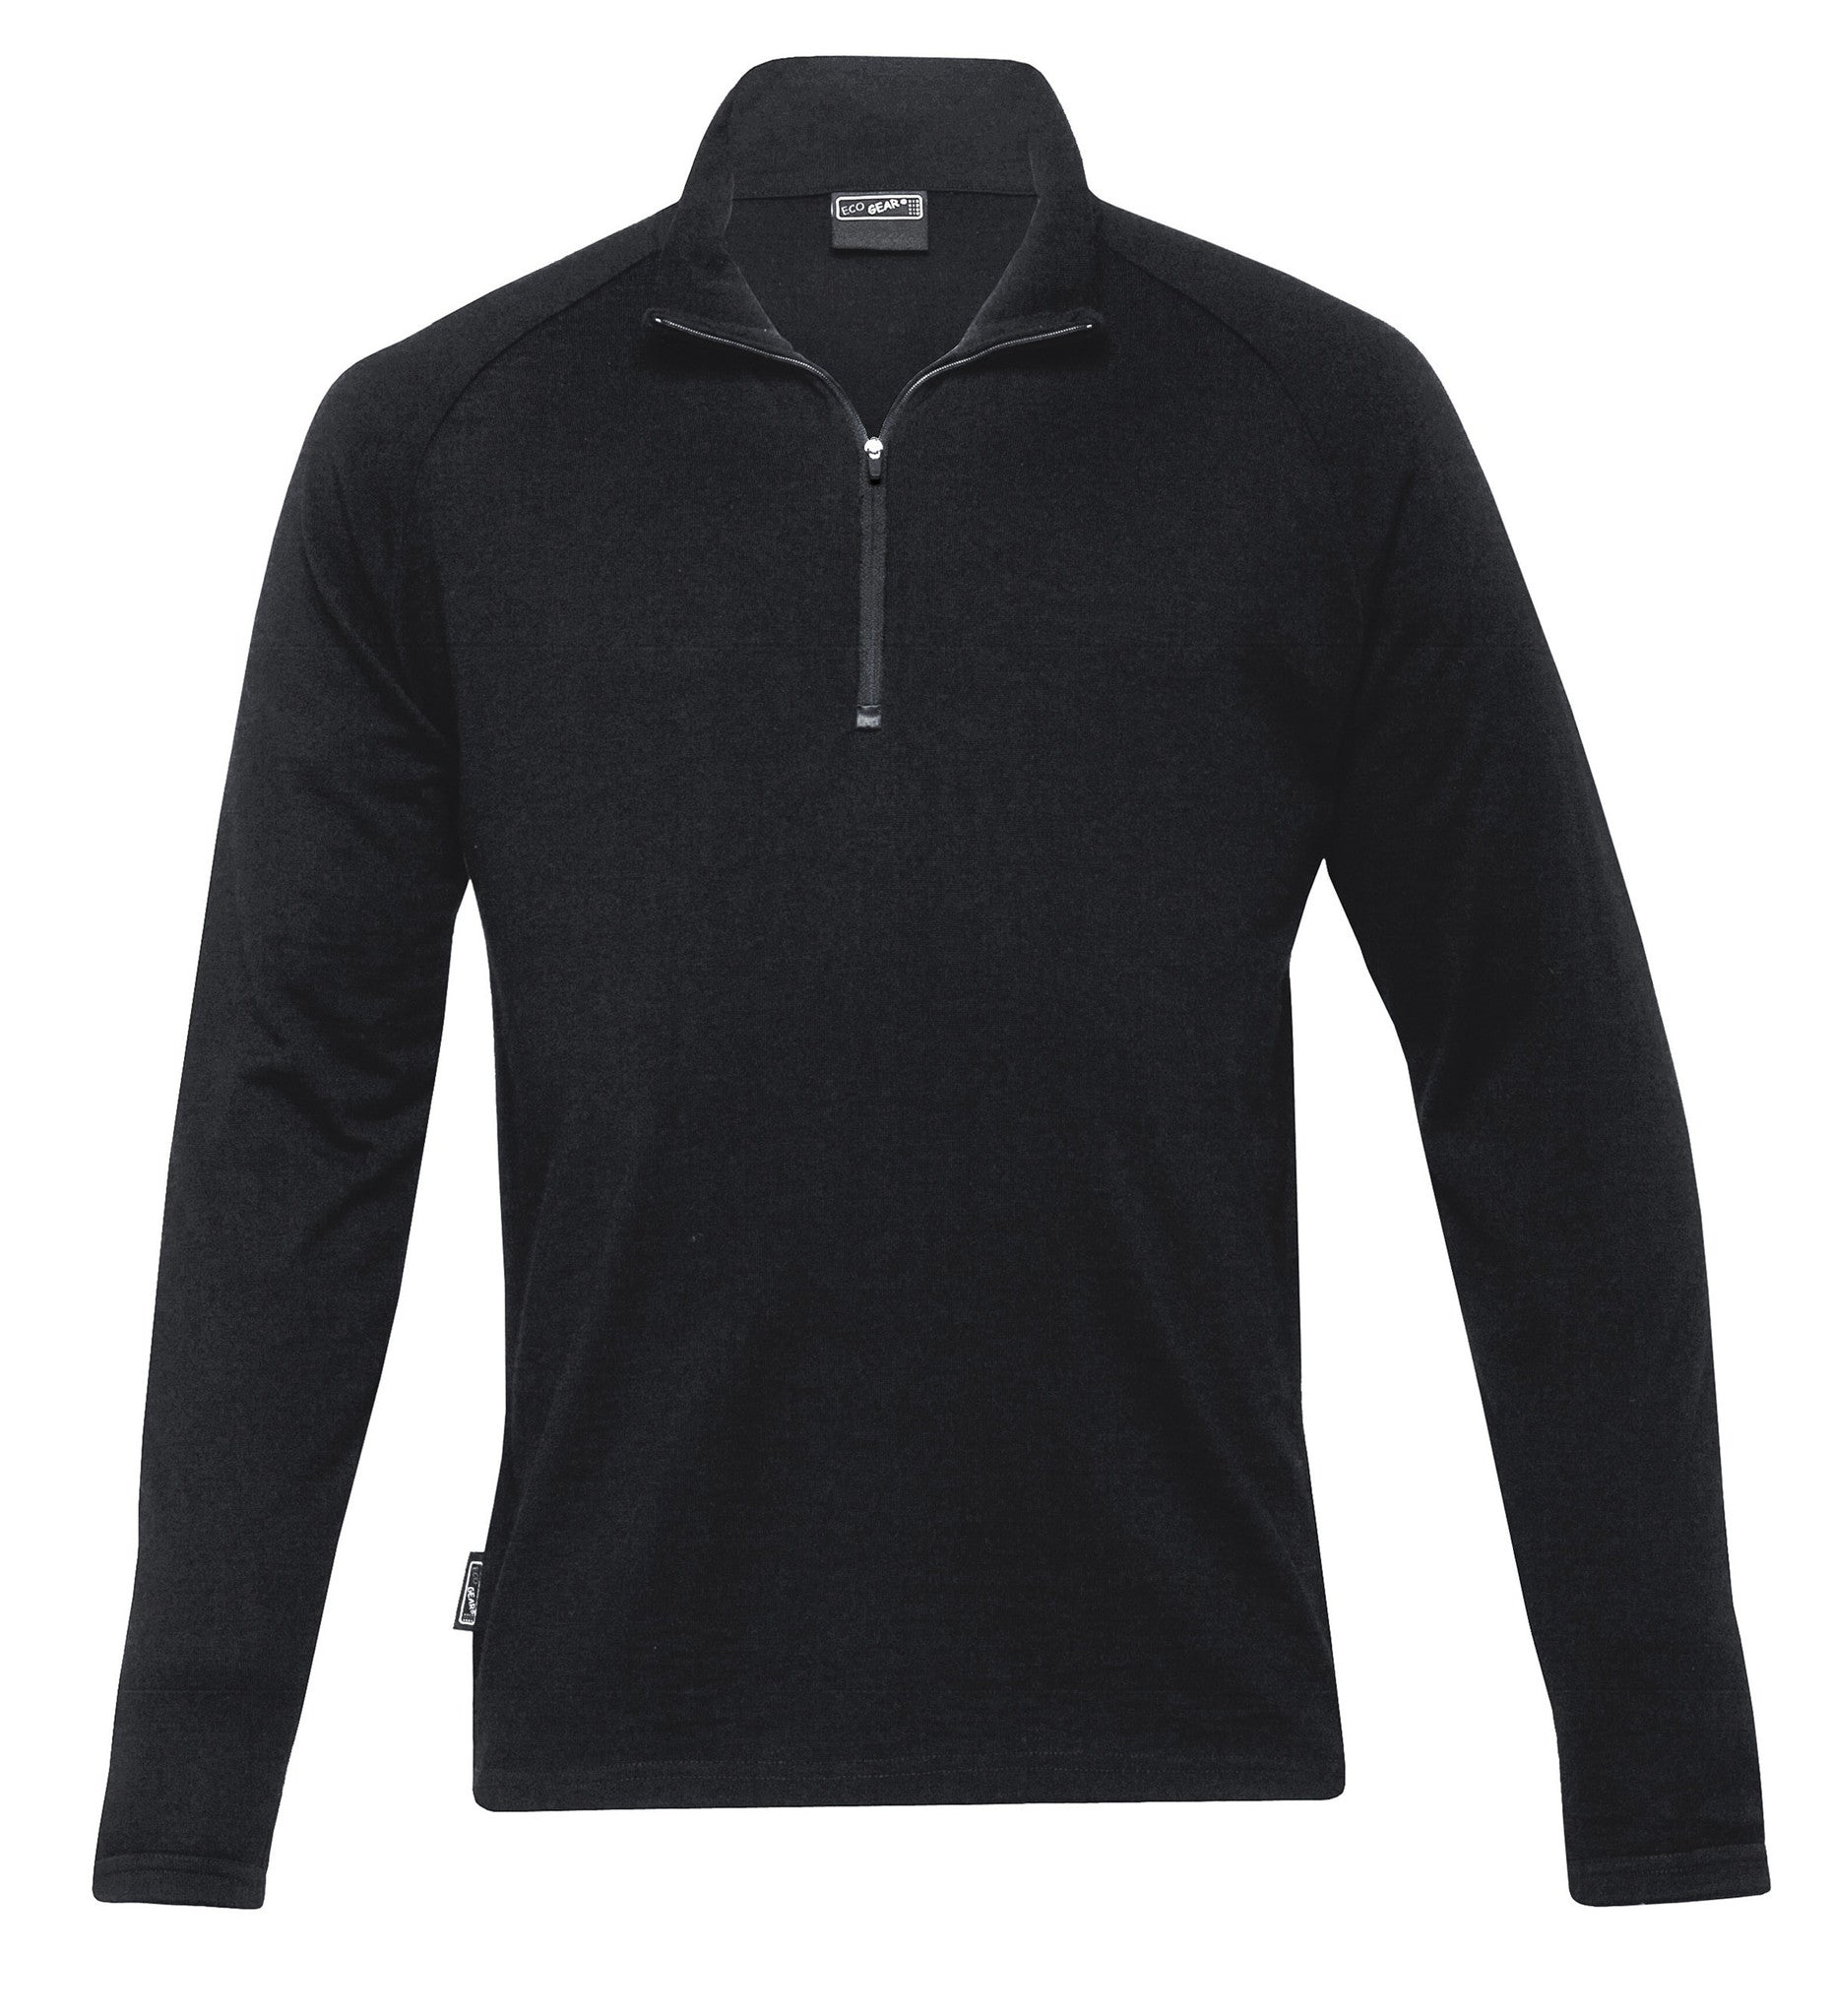 Gear For Life Merino Zip Pullover – Mens (EGMZ)